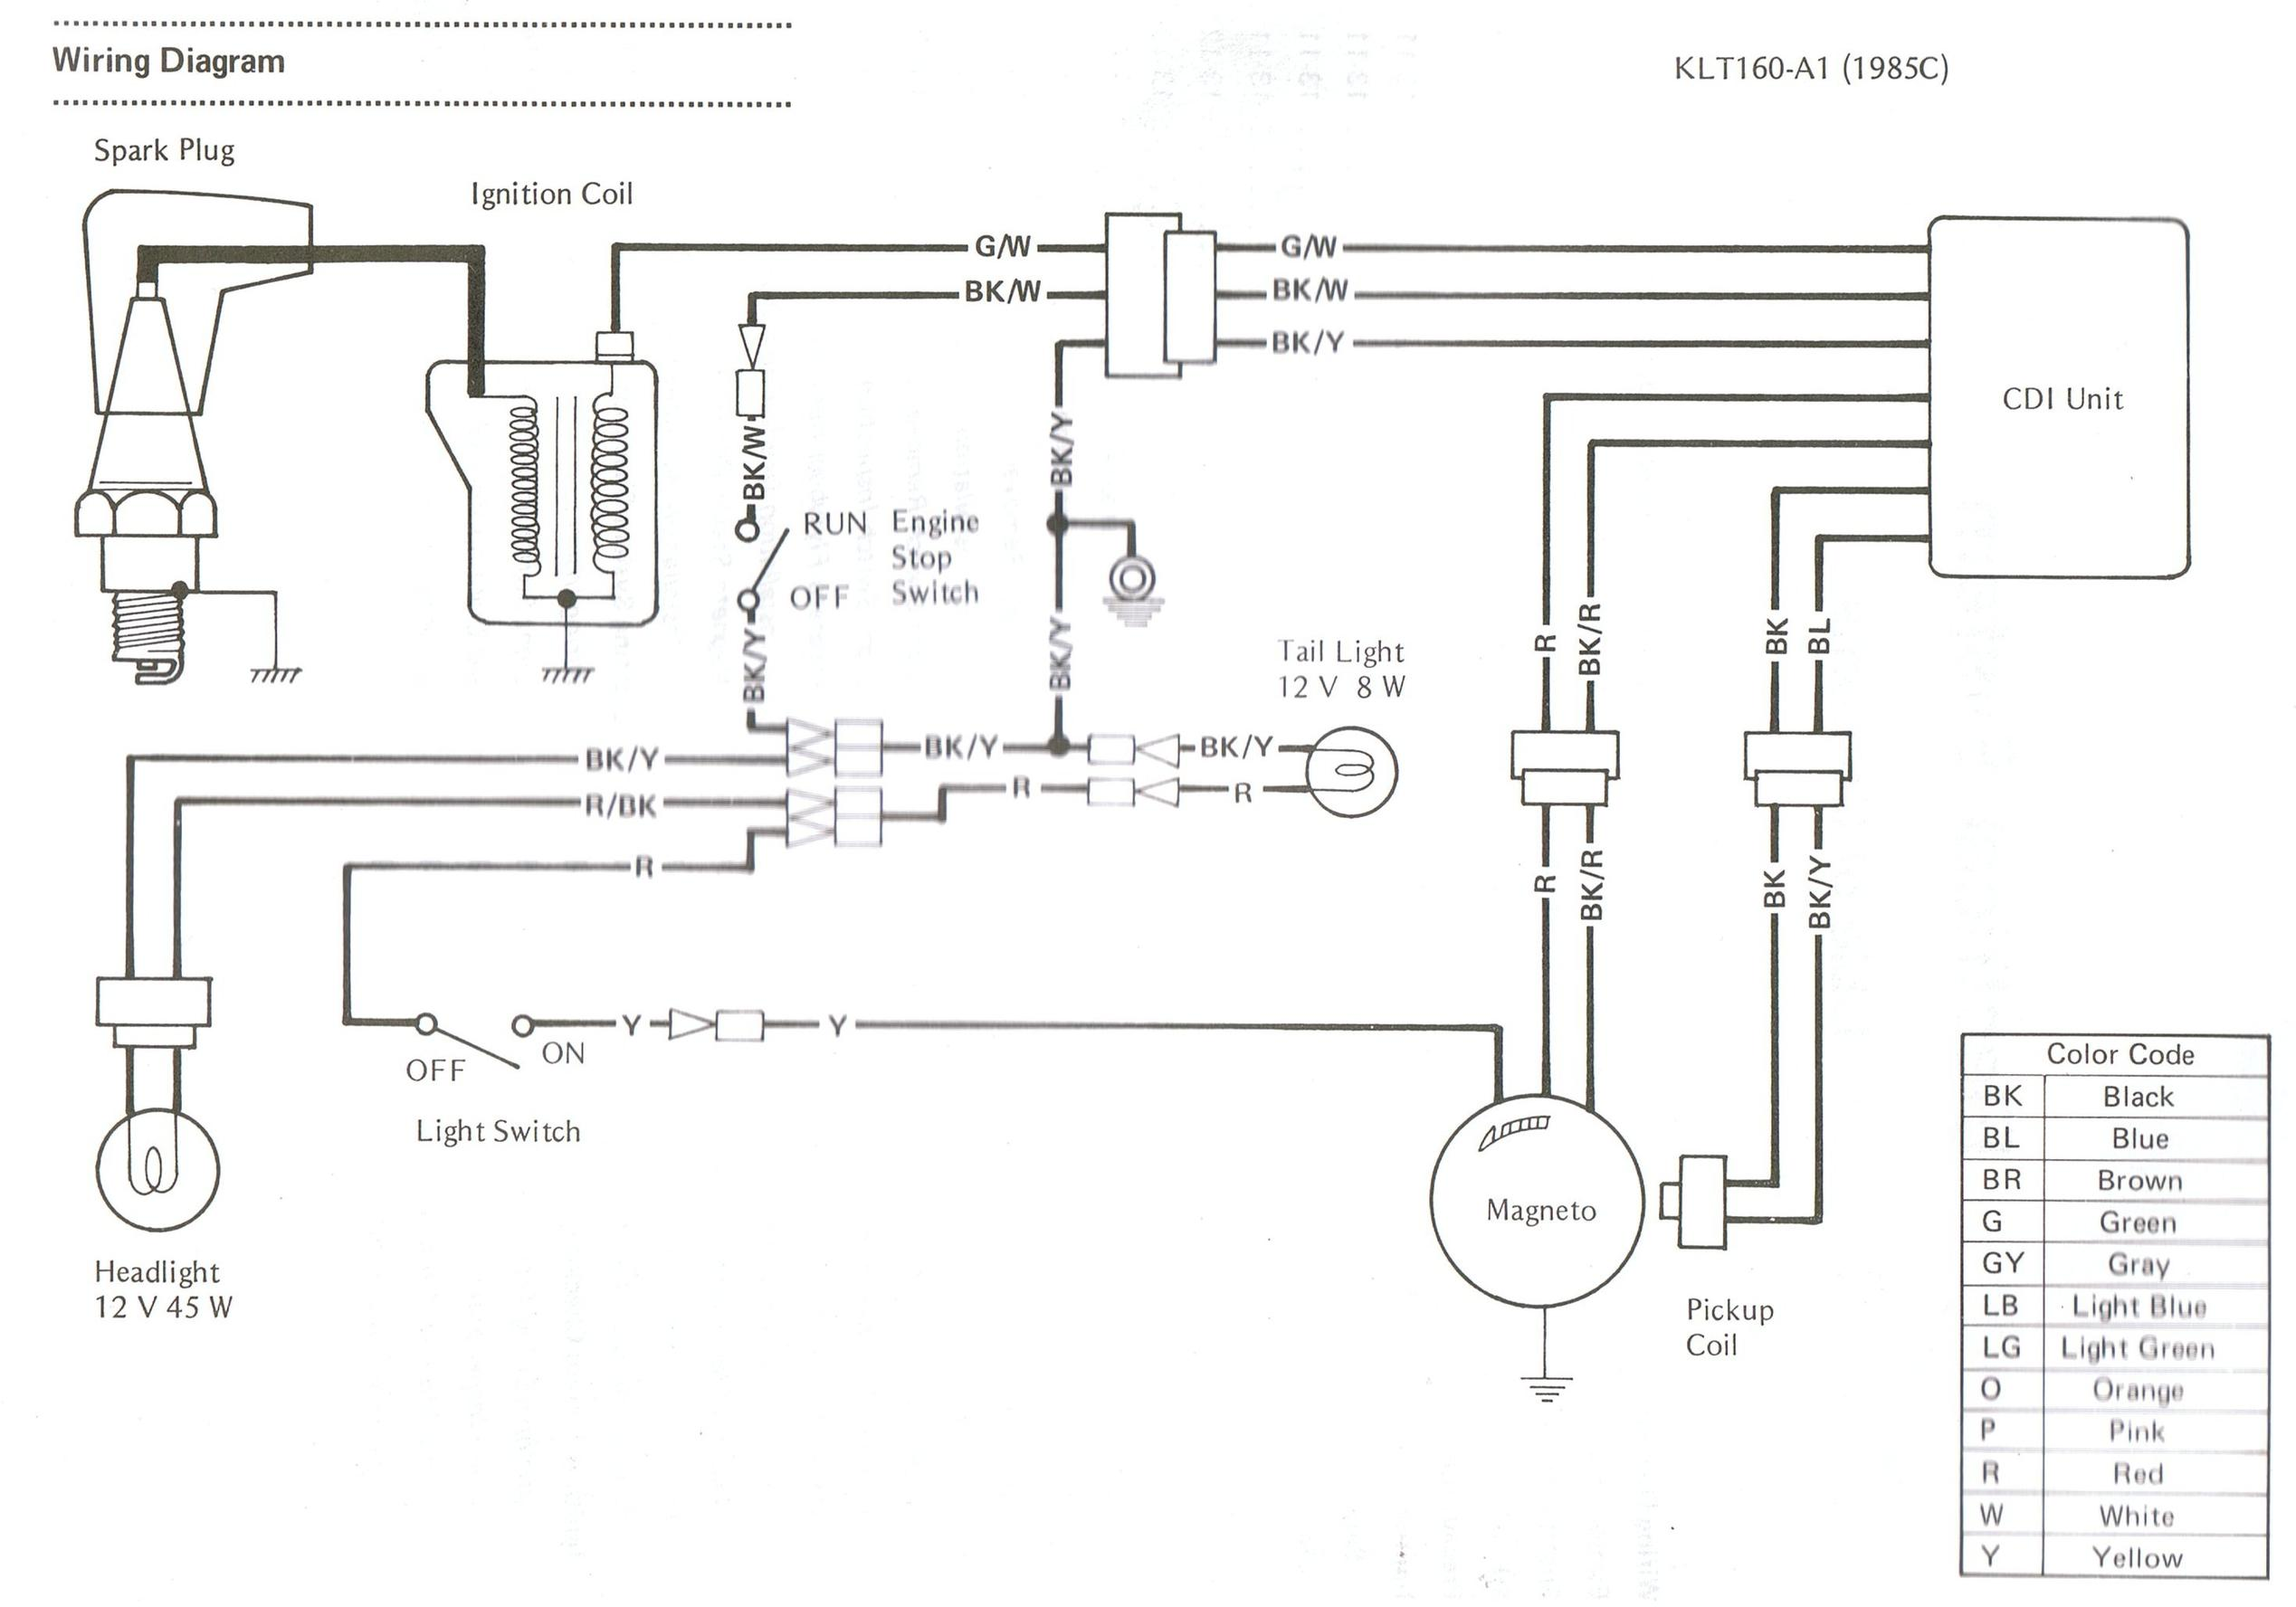 ct90 wiring diagram ct90 wiring diagrams attachment ct wiring diagram attachment